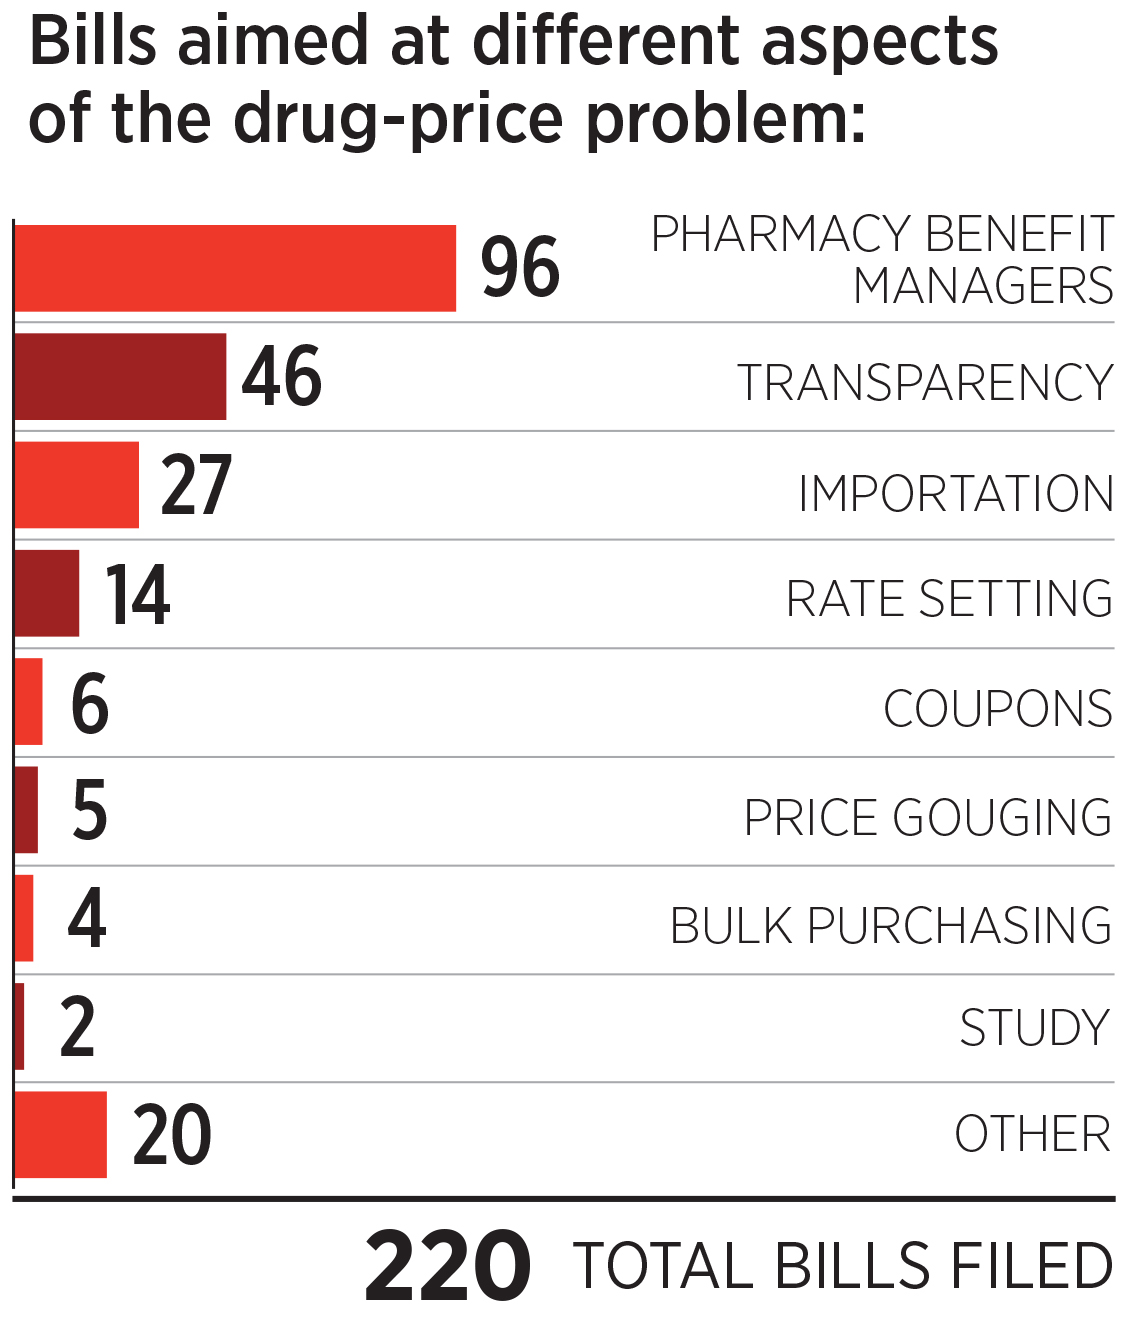 chart showing what types of bills were filed to fight drug costs